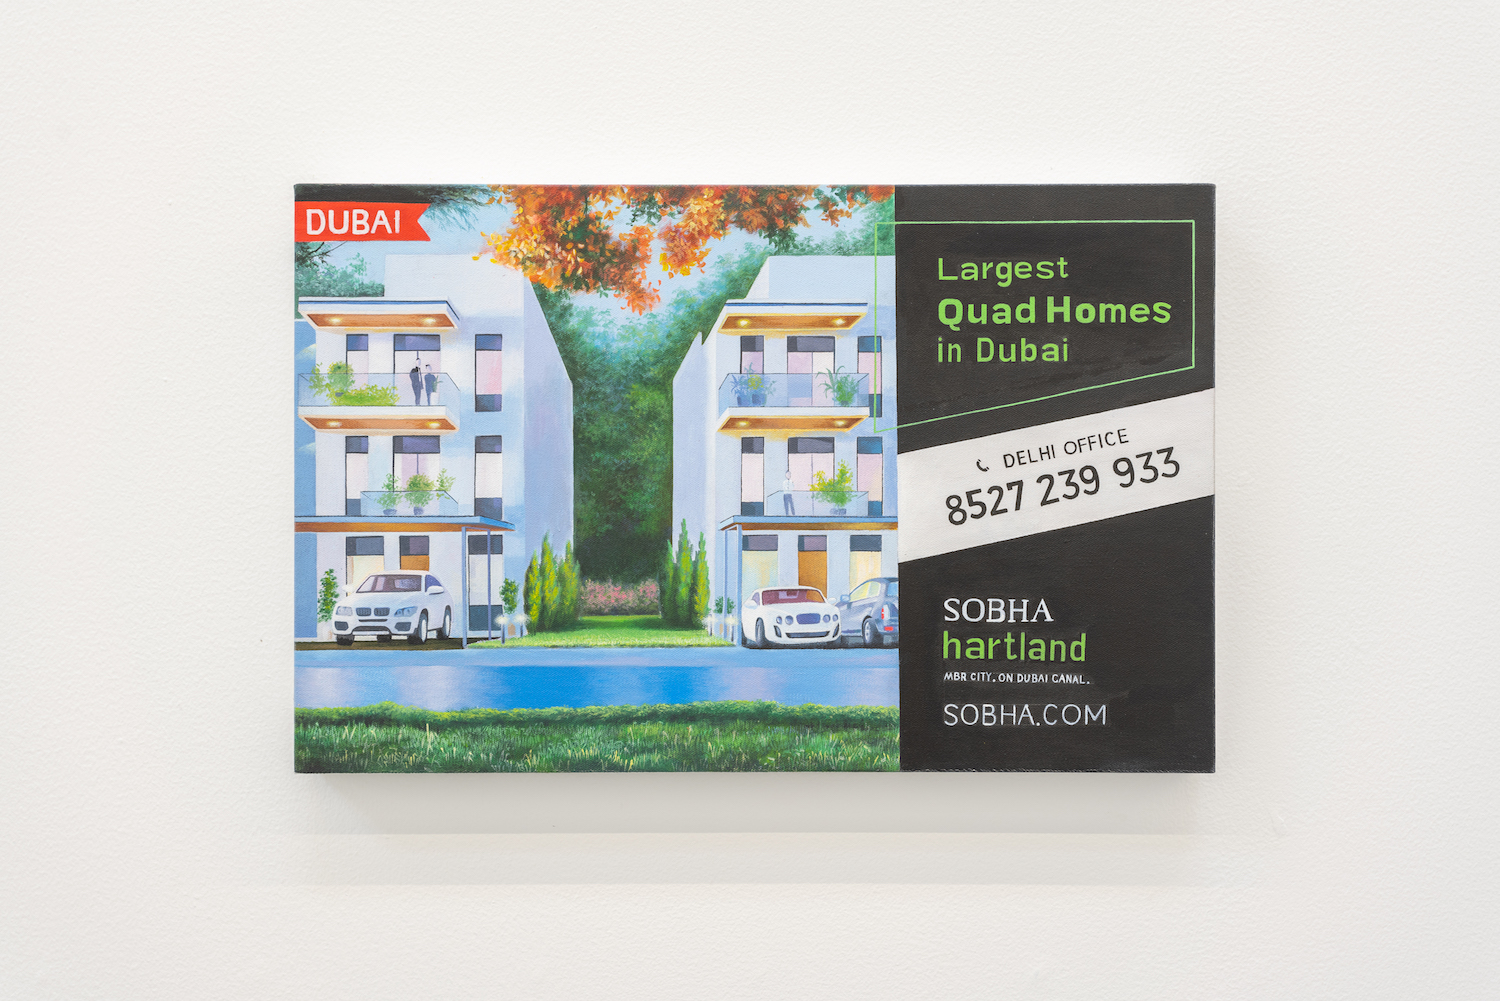 LARGEST QUAD HOMES IN DUBAI 2018 Oil on canvas Painting of a billboard in Delhi advertising real estate investment opportunity 36.4 x 56.9 cm